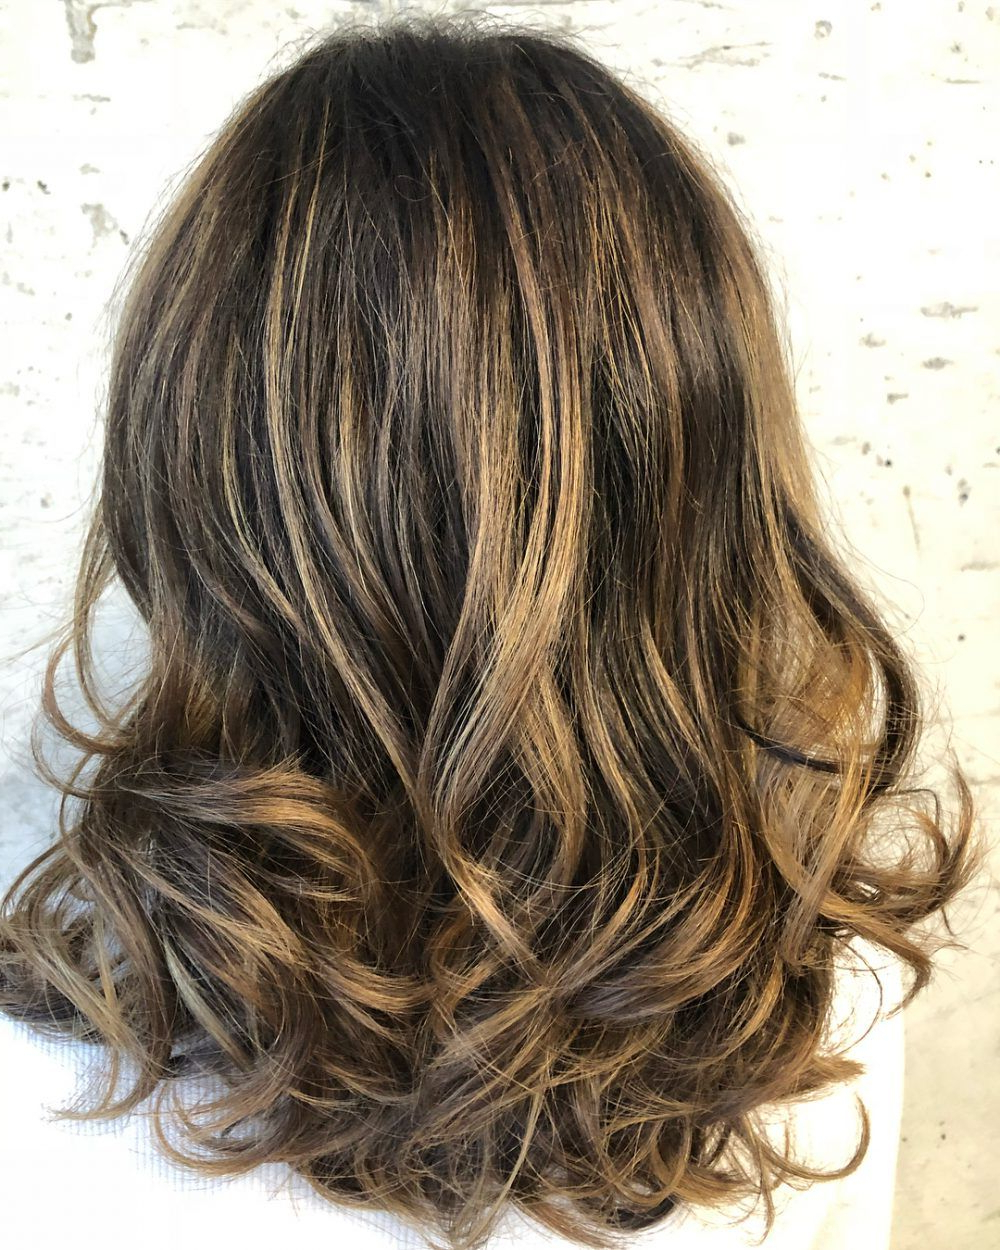 Current Honey Kissed Highlights Curls Hairstyles With Honey Brown Hair – 22 Rejuvenating Hair Color Ideas (View 13 of 20)